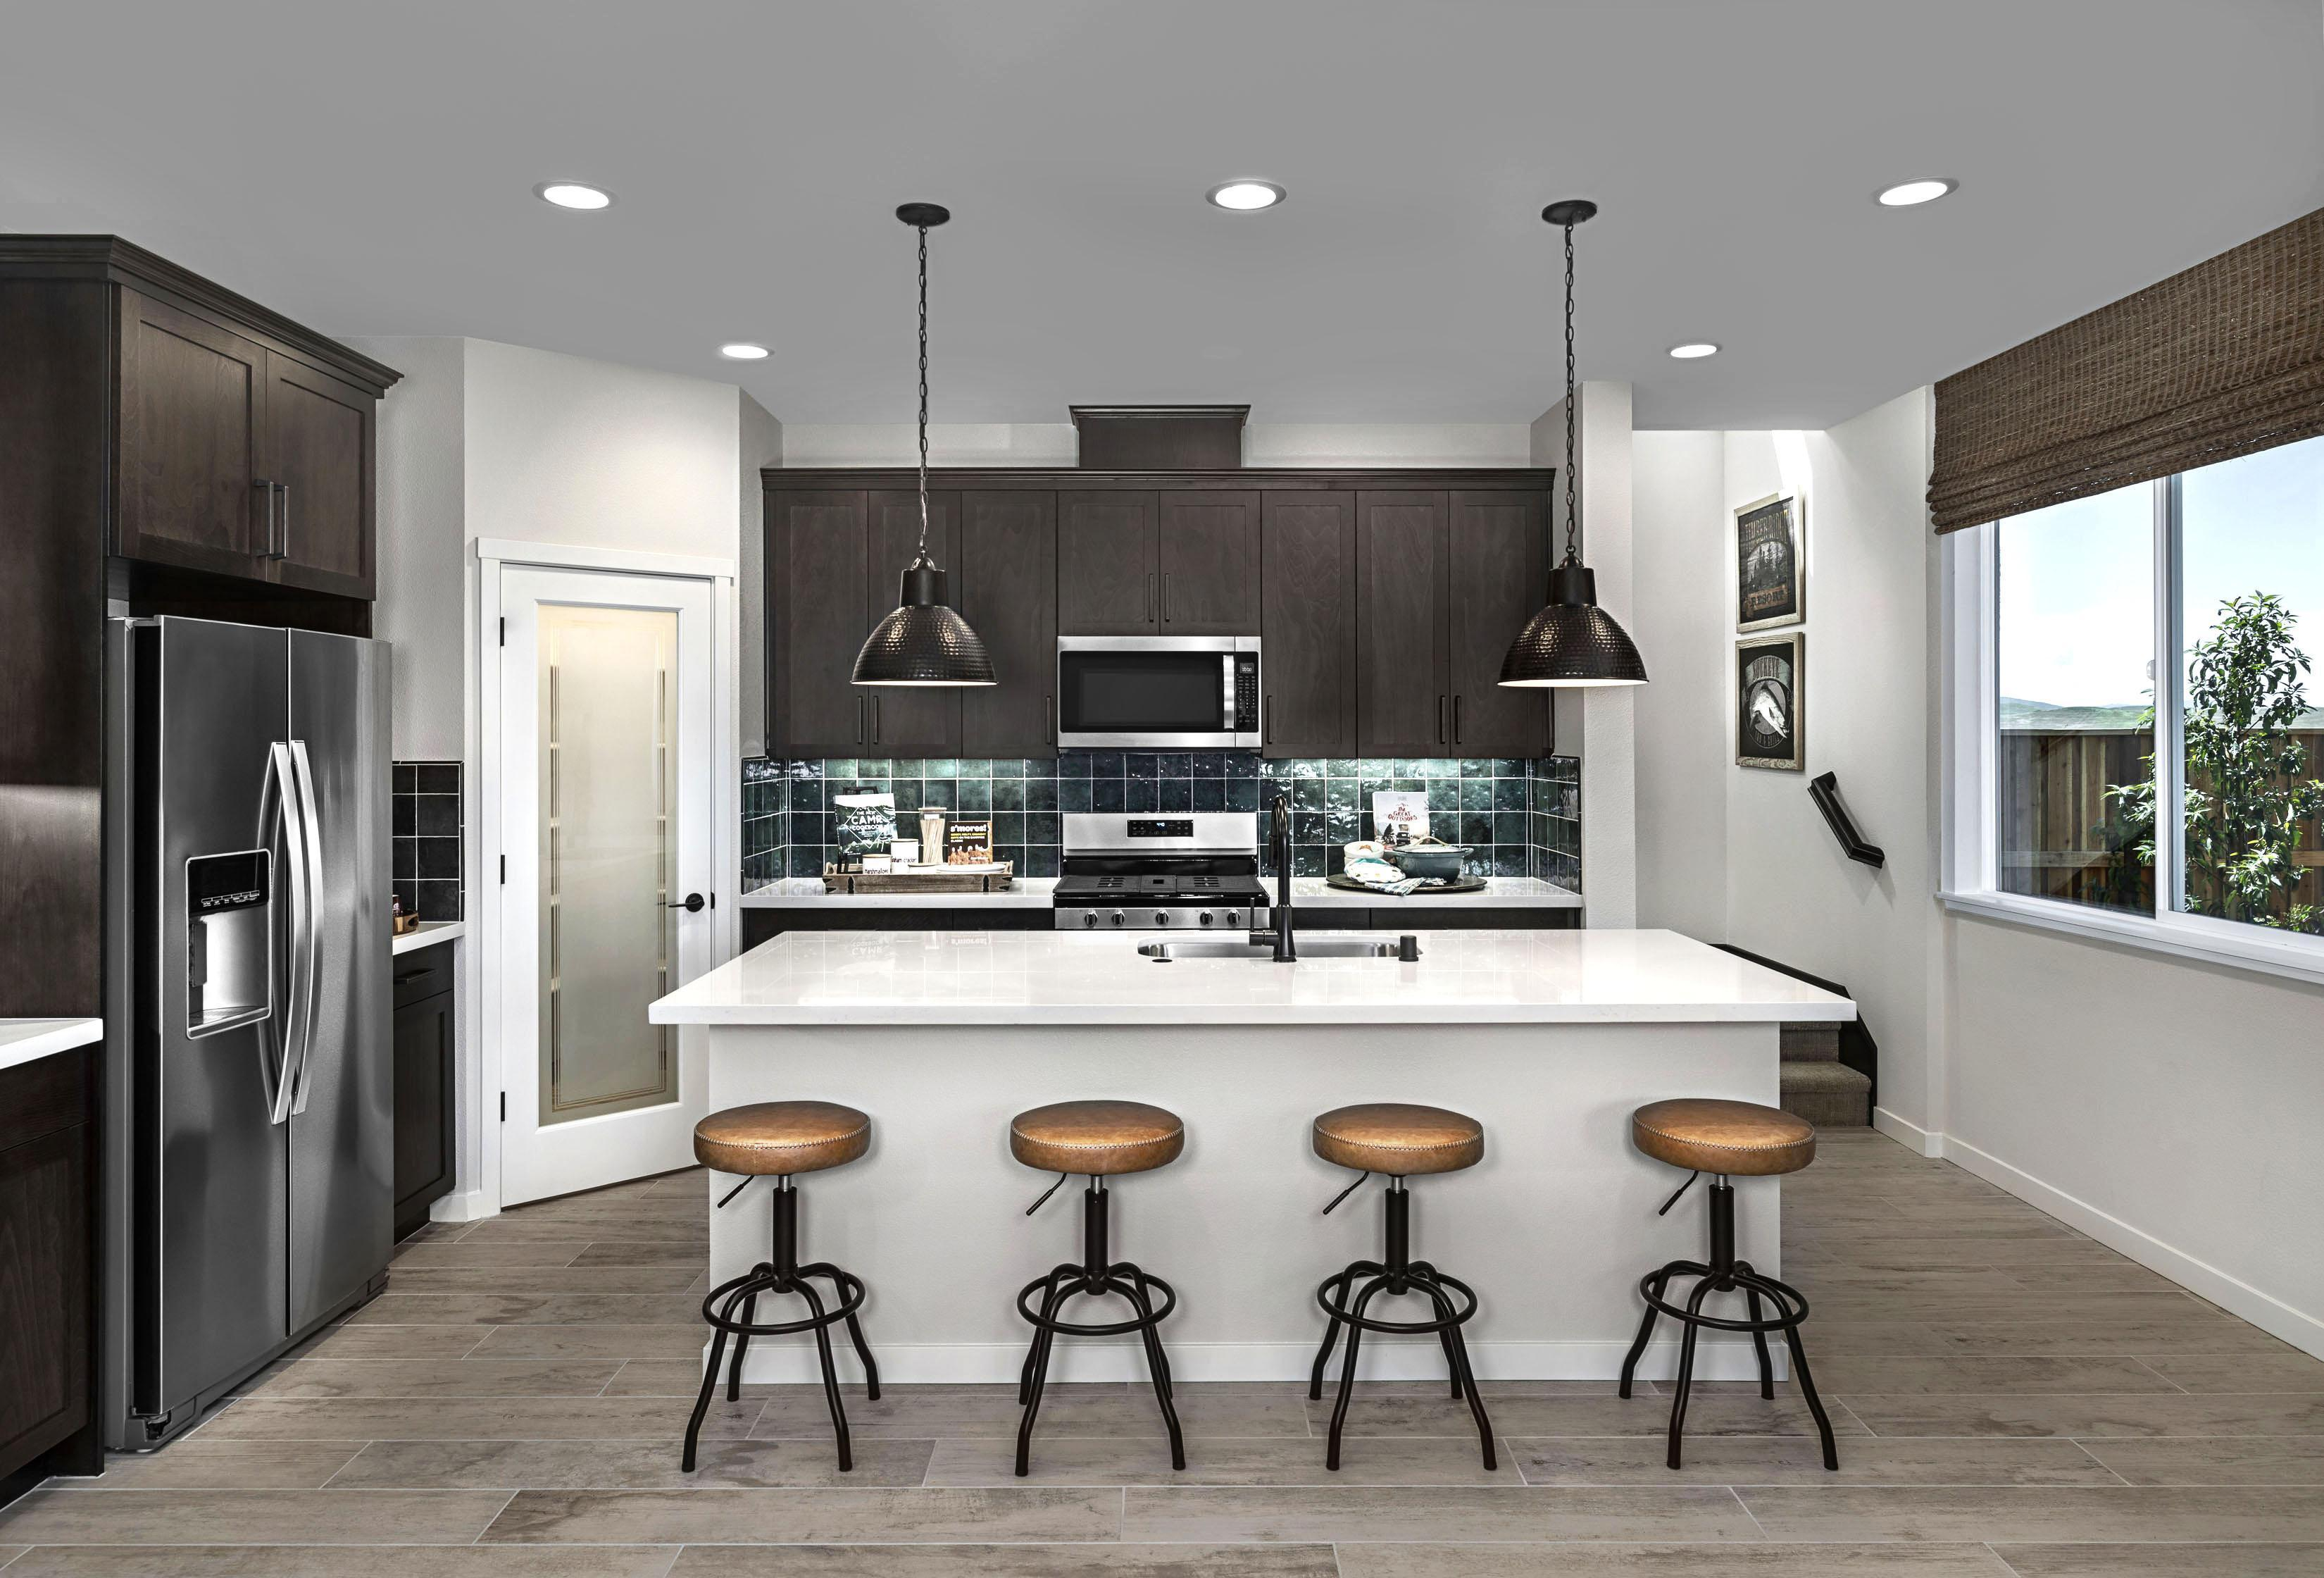 Kitchen featured in the Carousel Residence 2 By Kiper Homes in Santa Cruz, CA